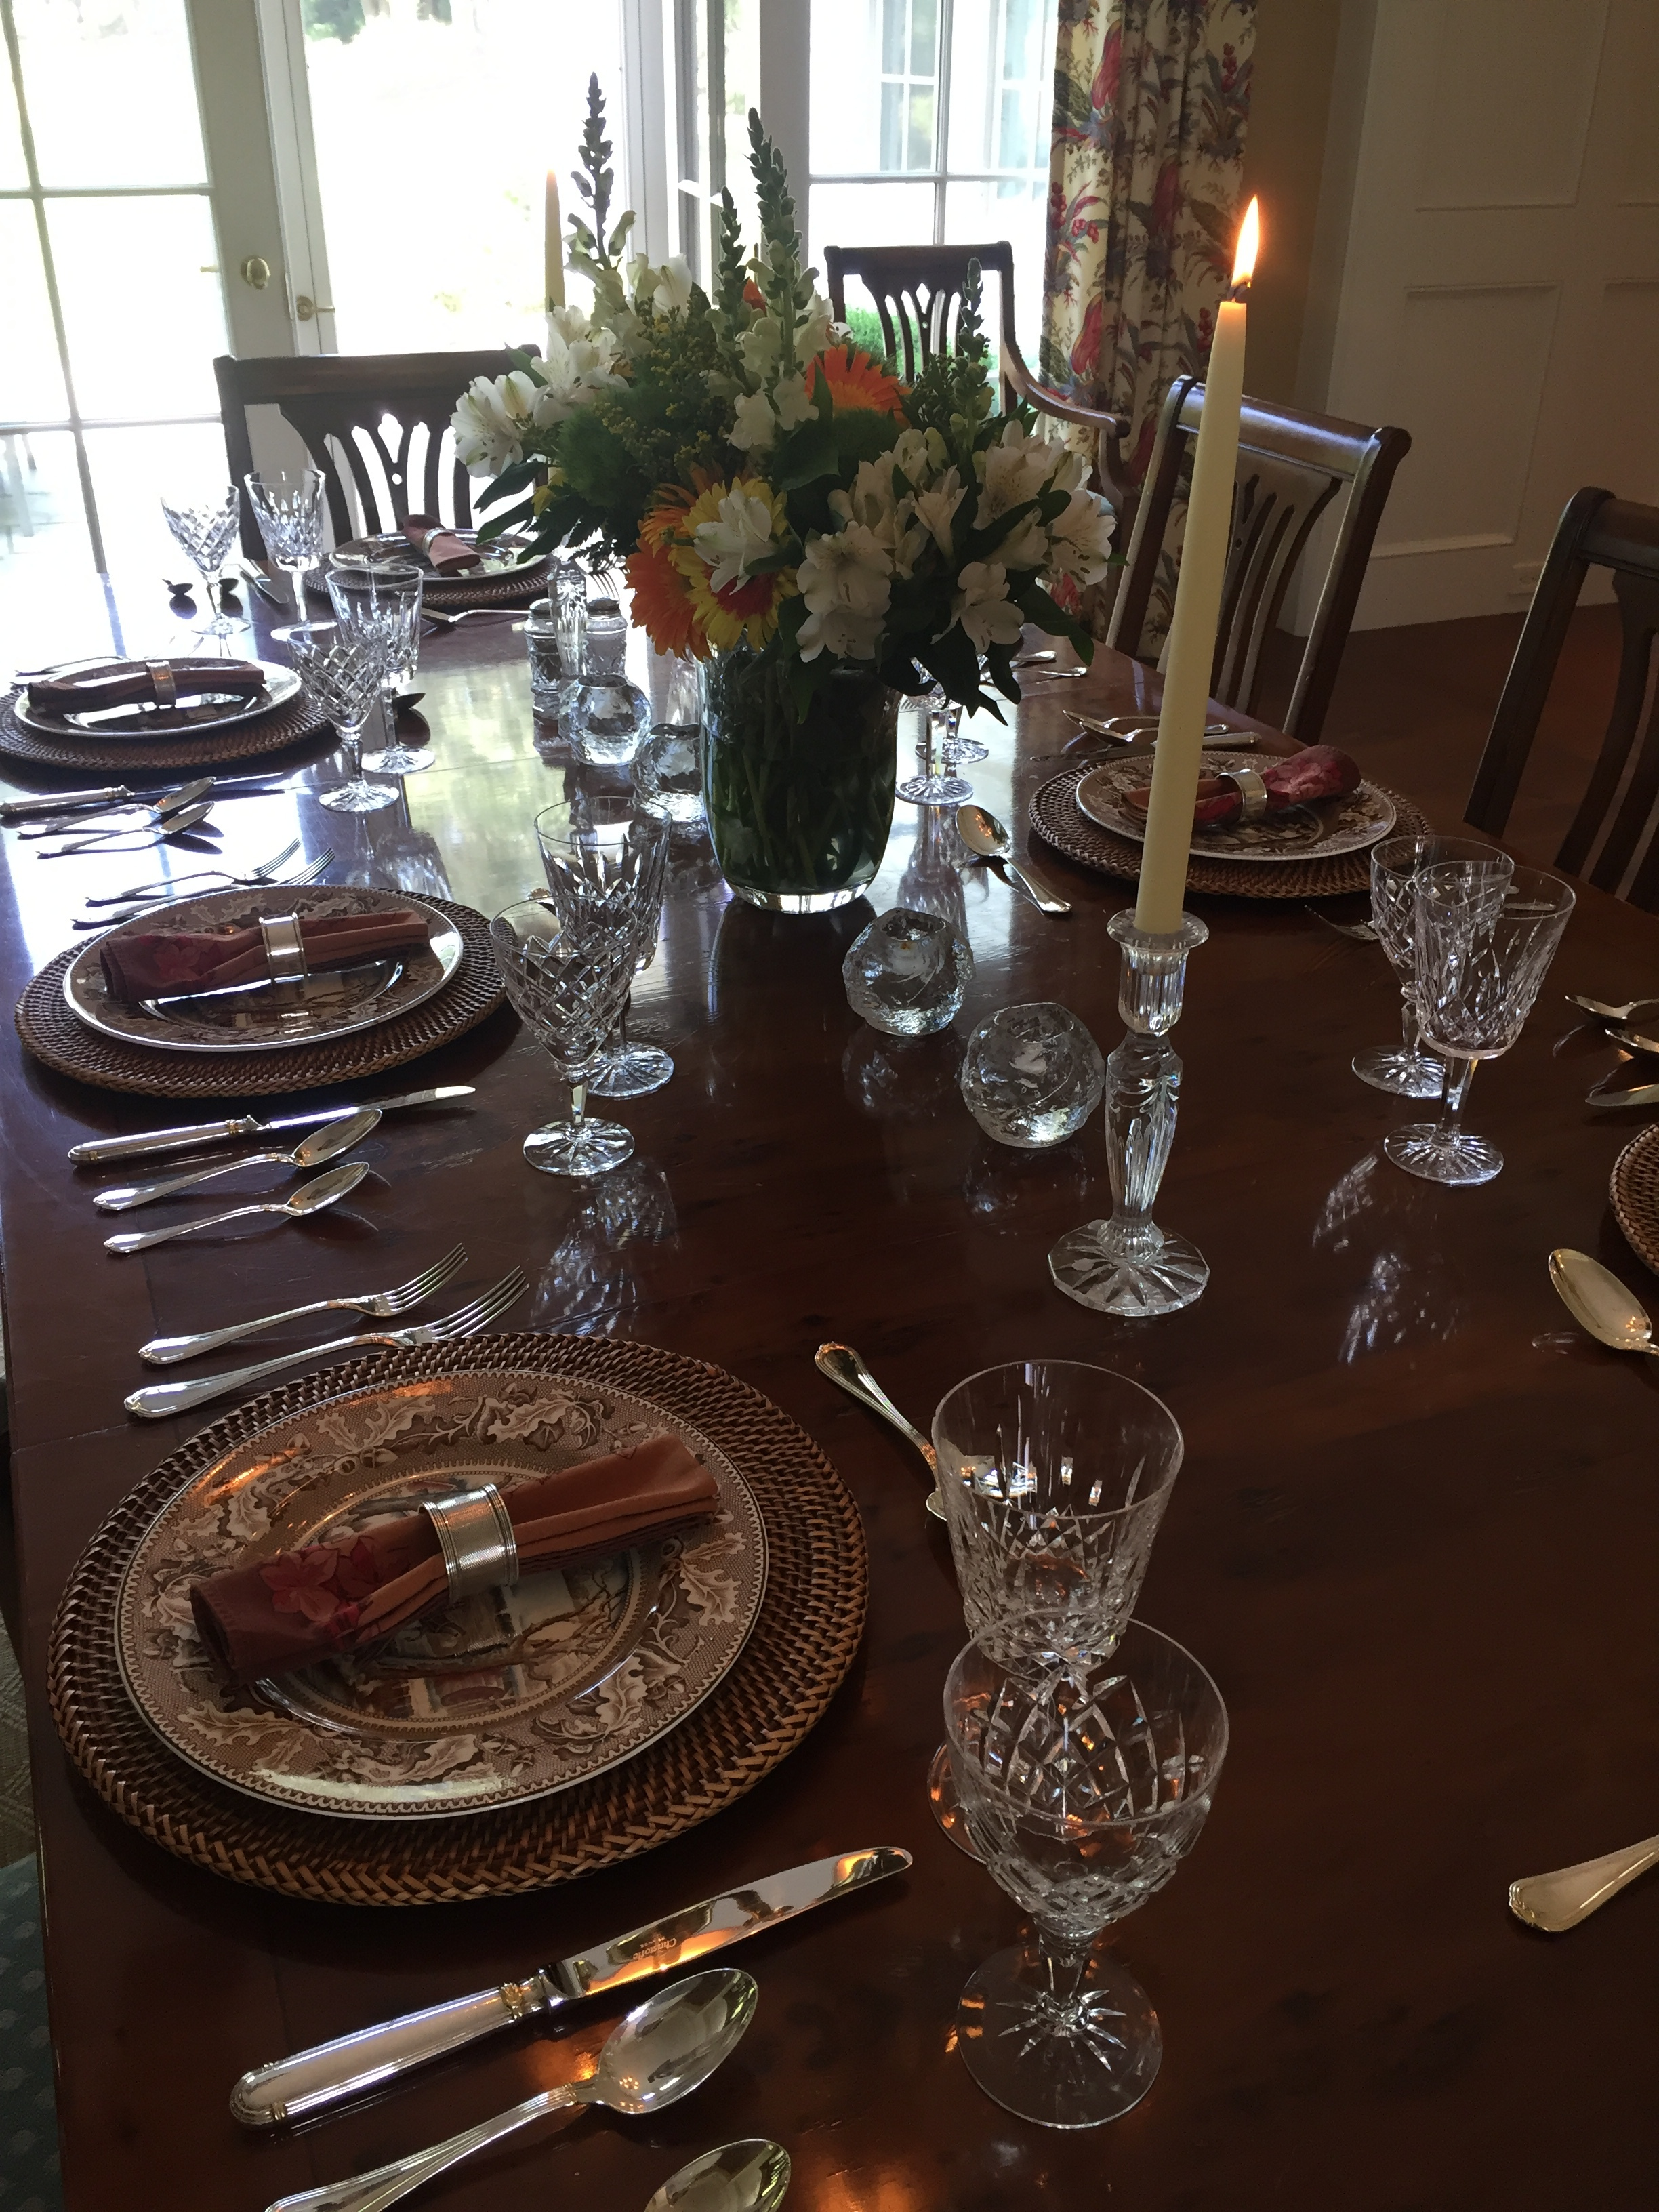 a table set for entertaining